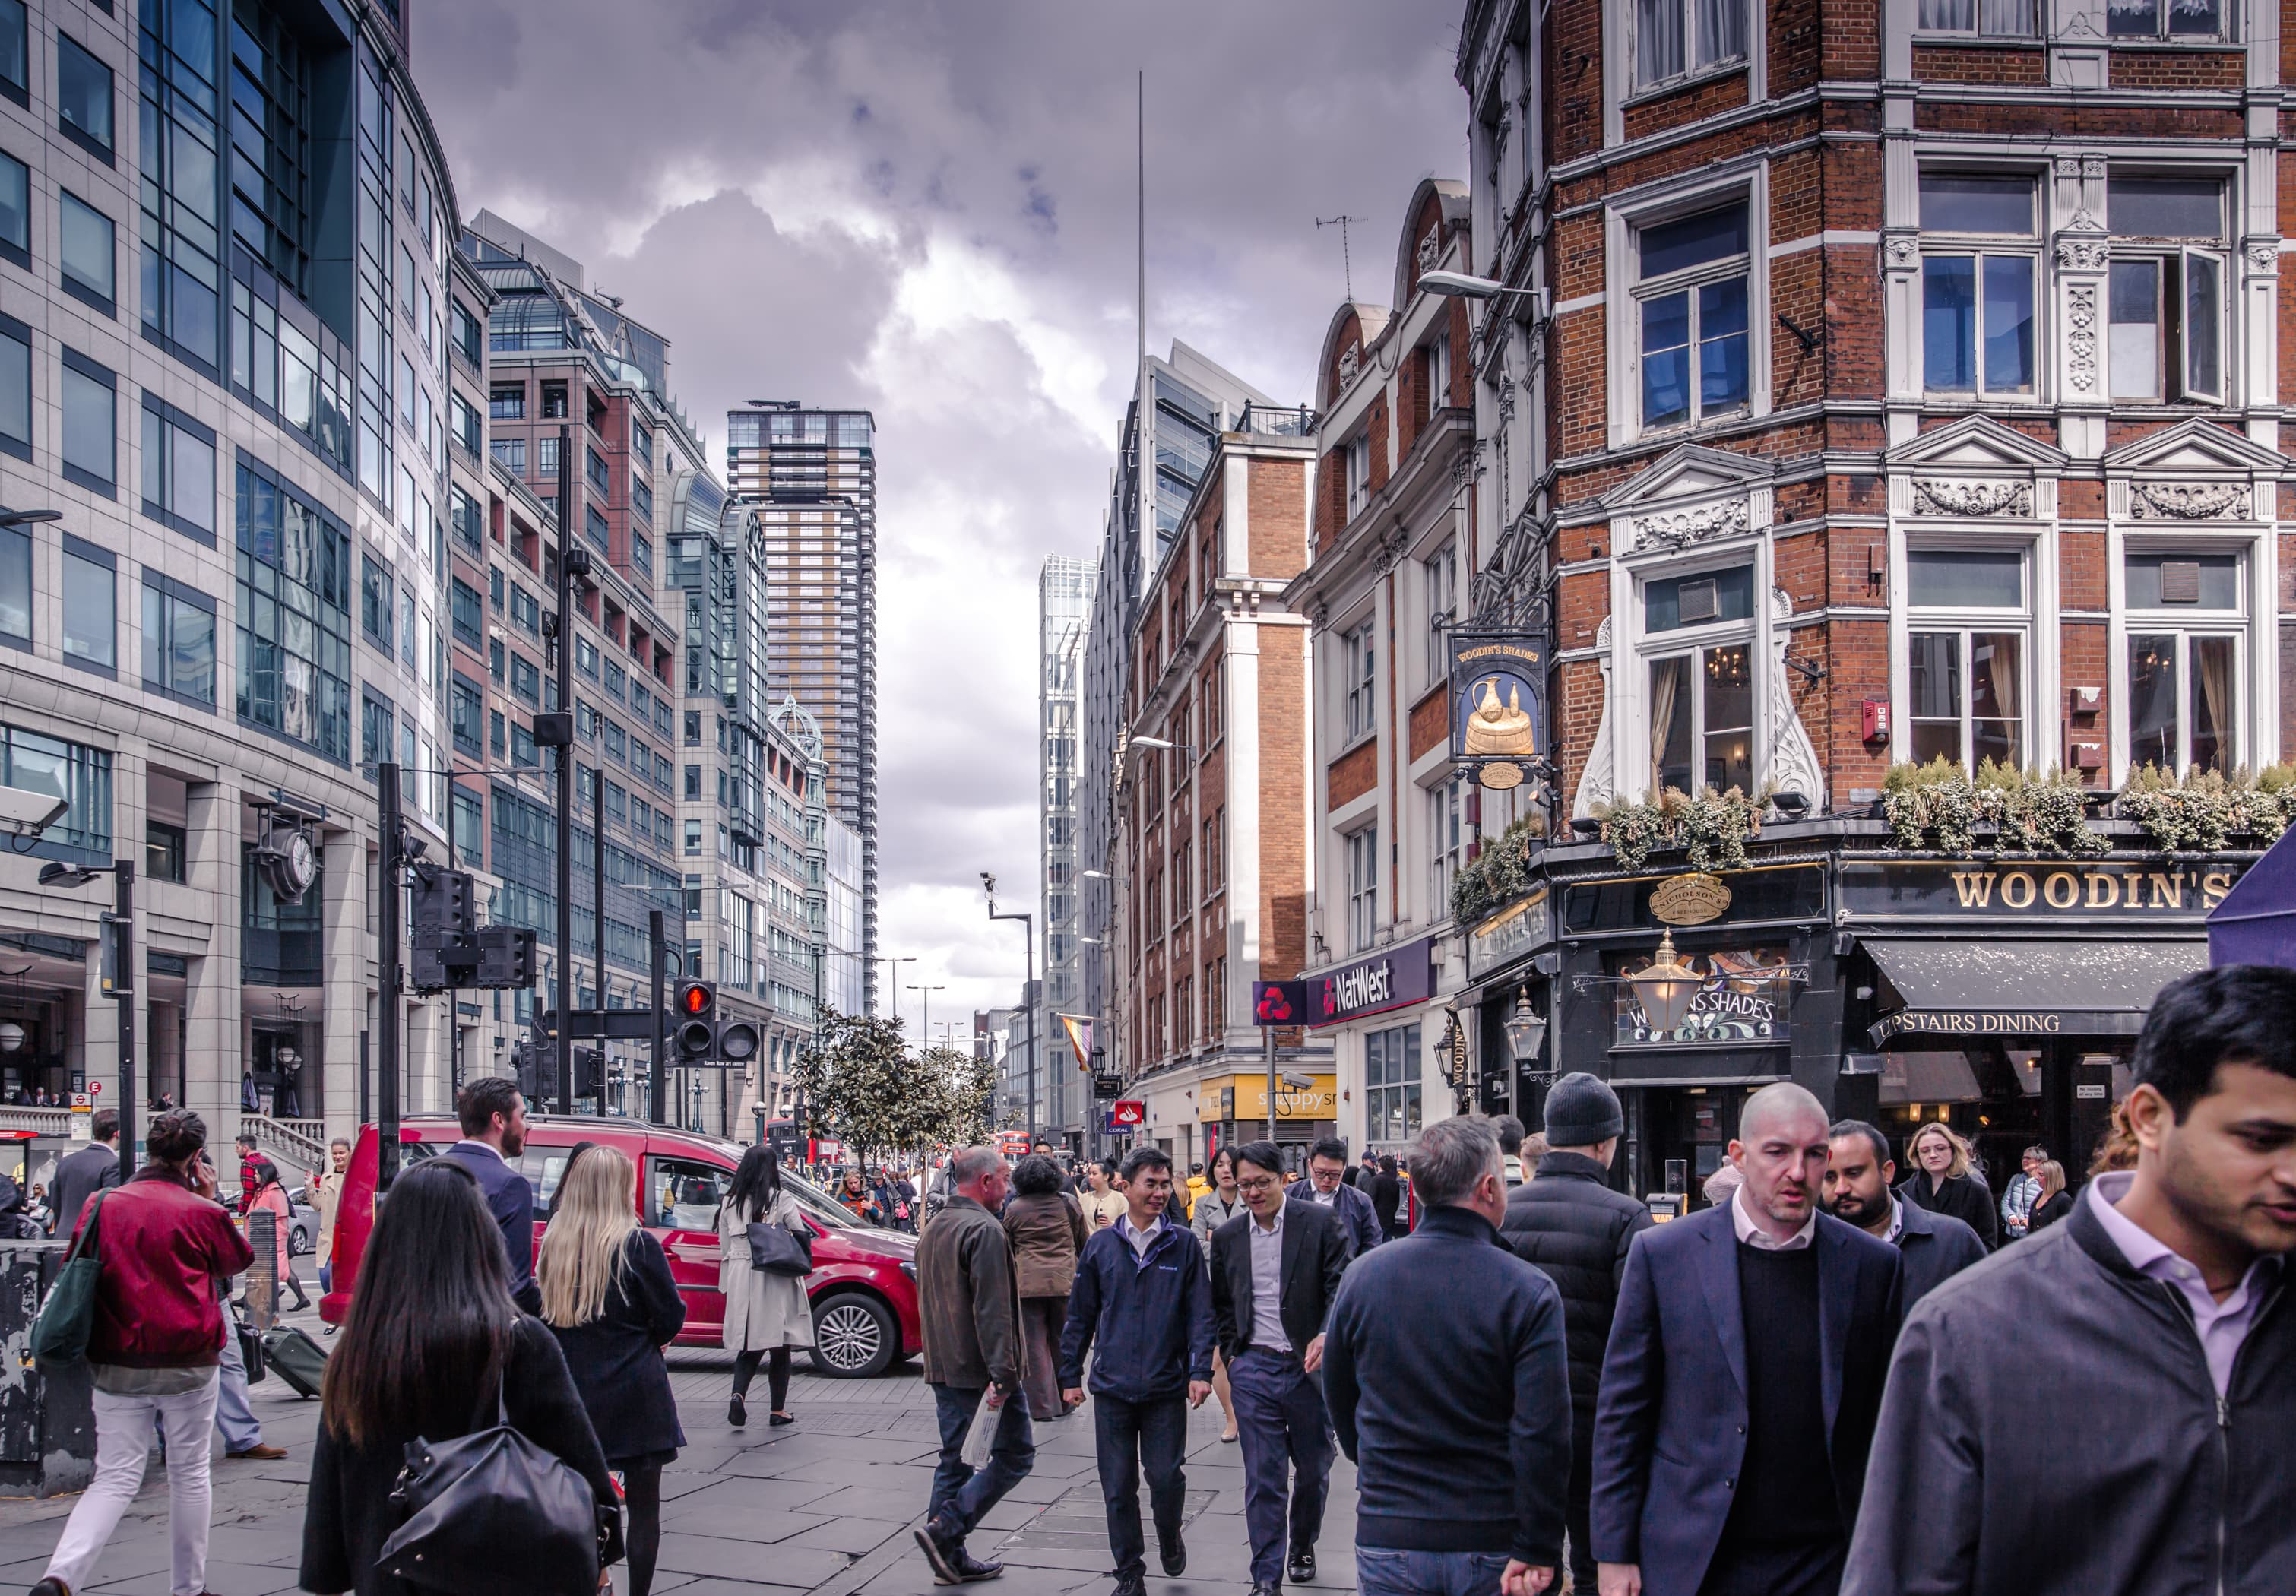 UK startup investment surge could see business unicorns multiply post-pandemic